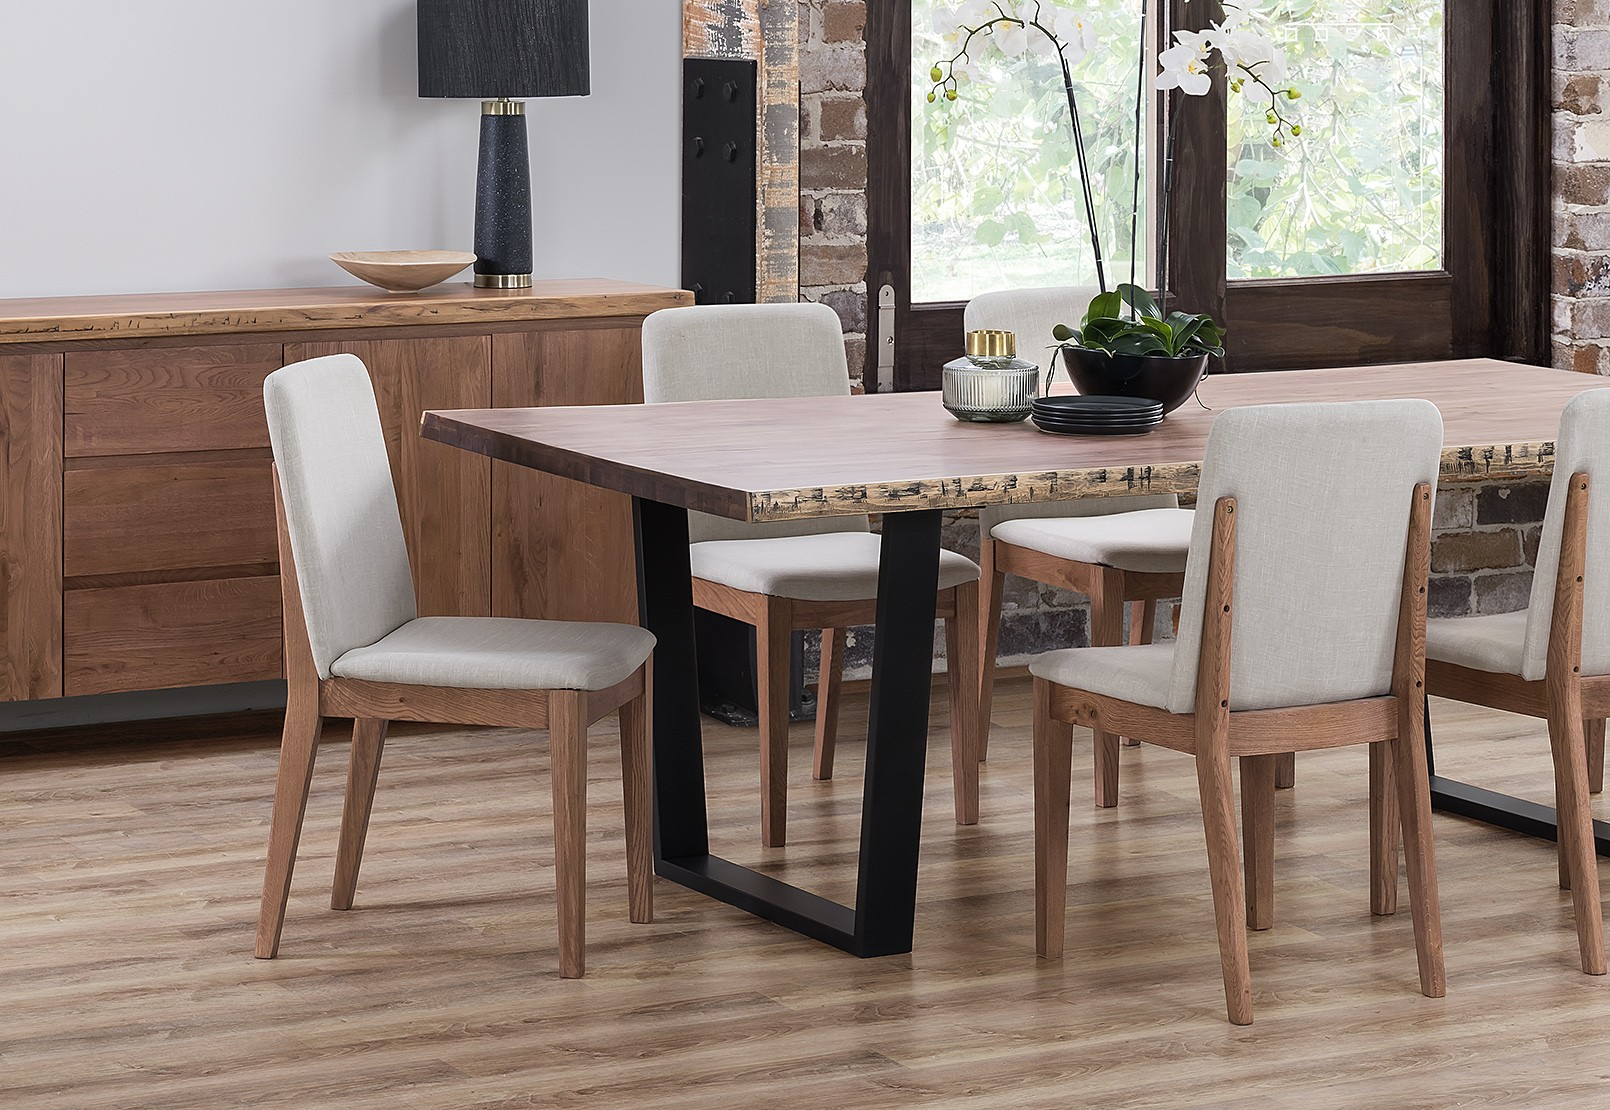 Dining Tables | Glass, Square, Wooden | Amart Furniture Inside Latest Shepparton Vintage 3 Piece Dining Sets (View 15 of 20)